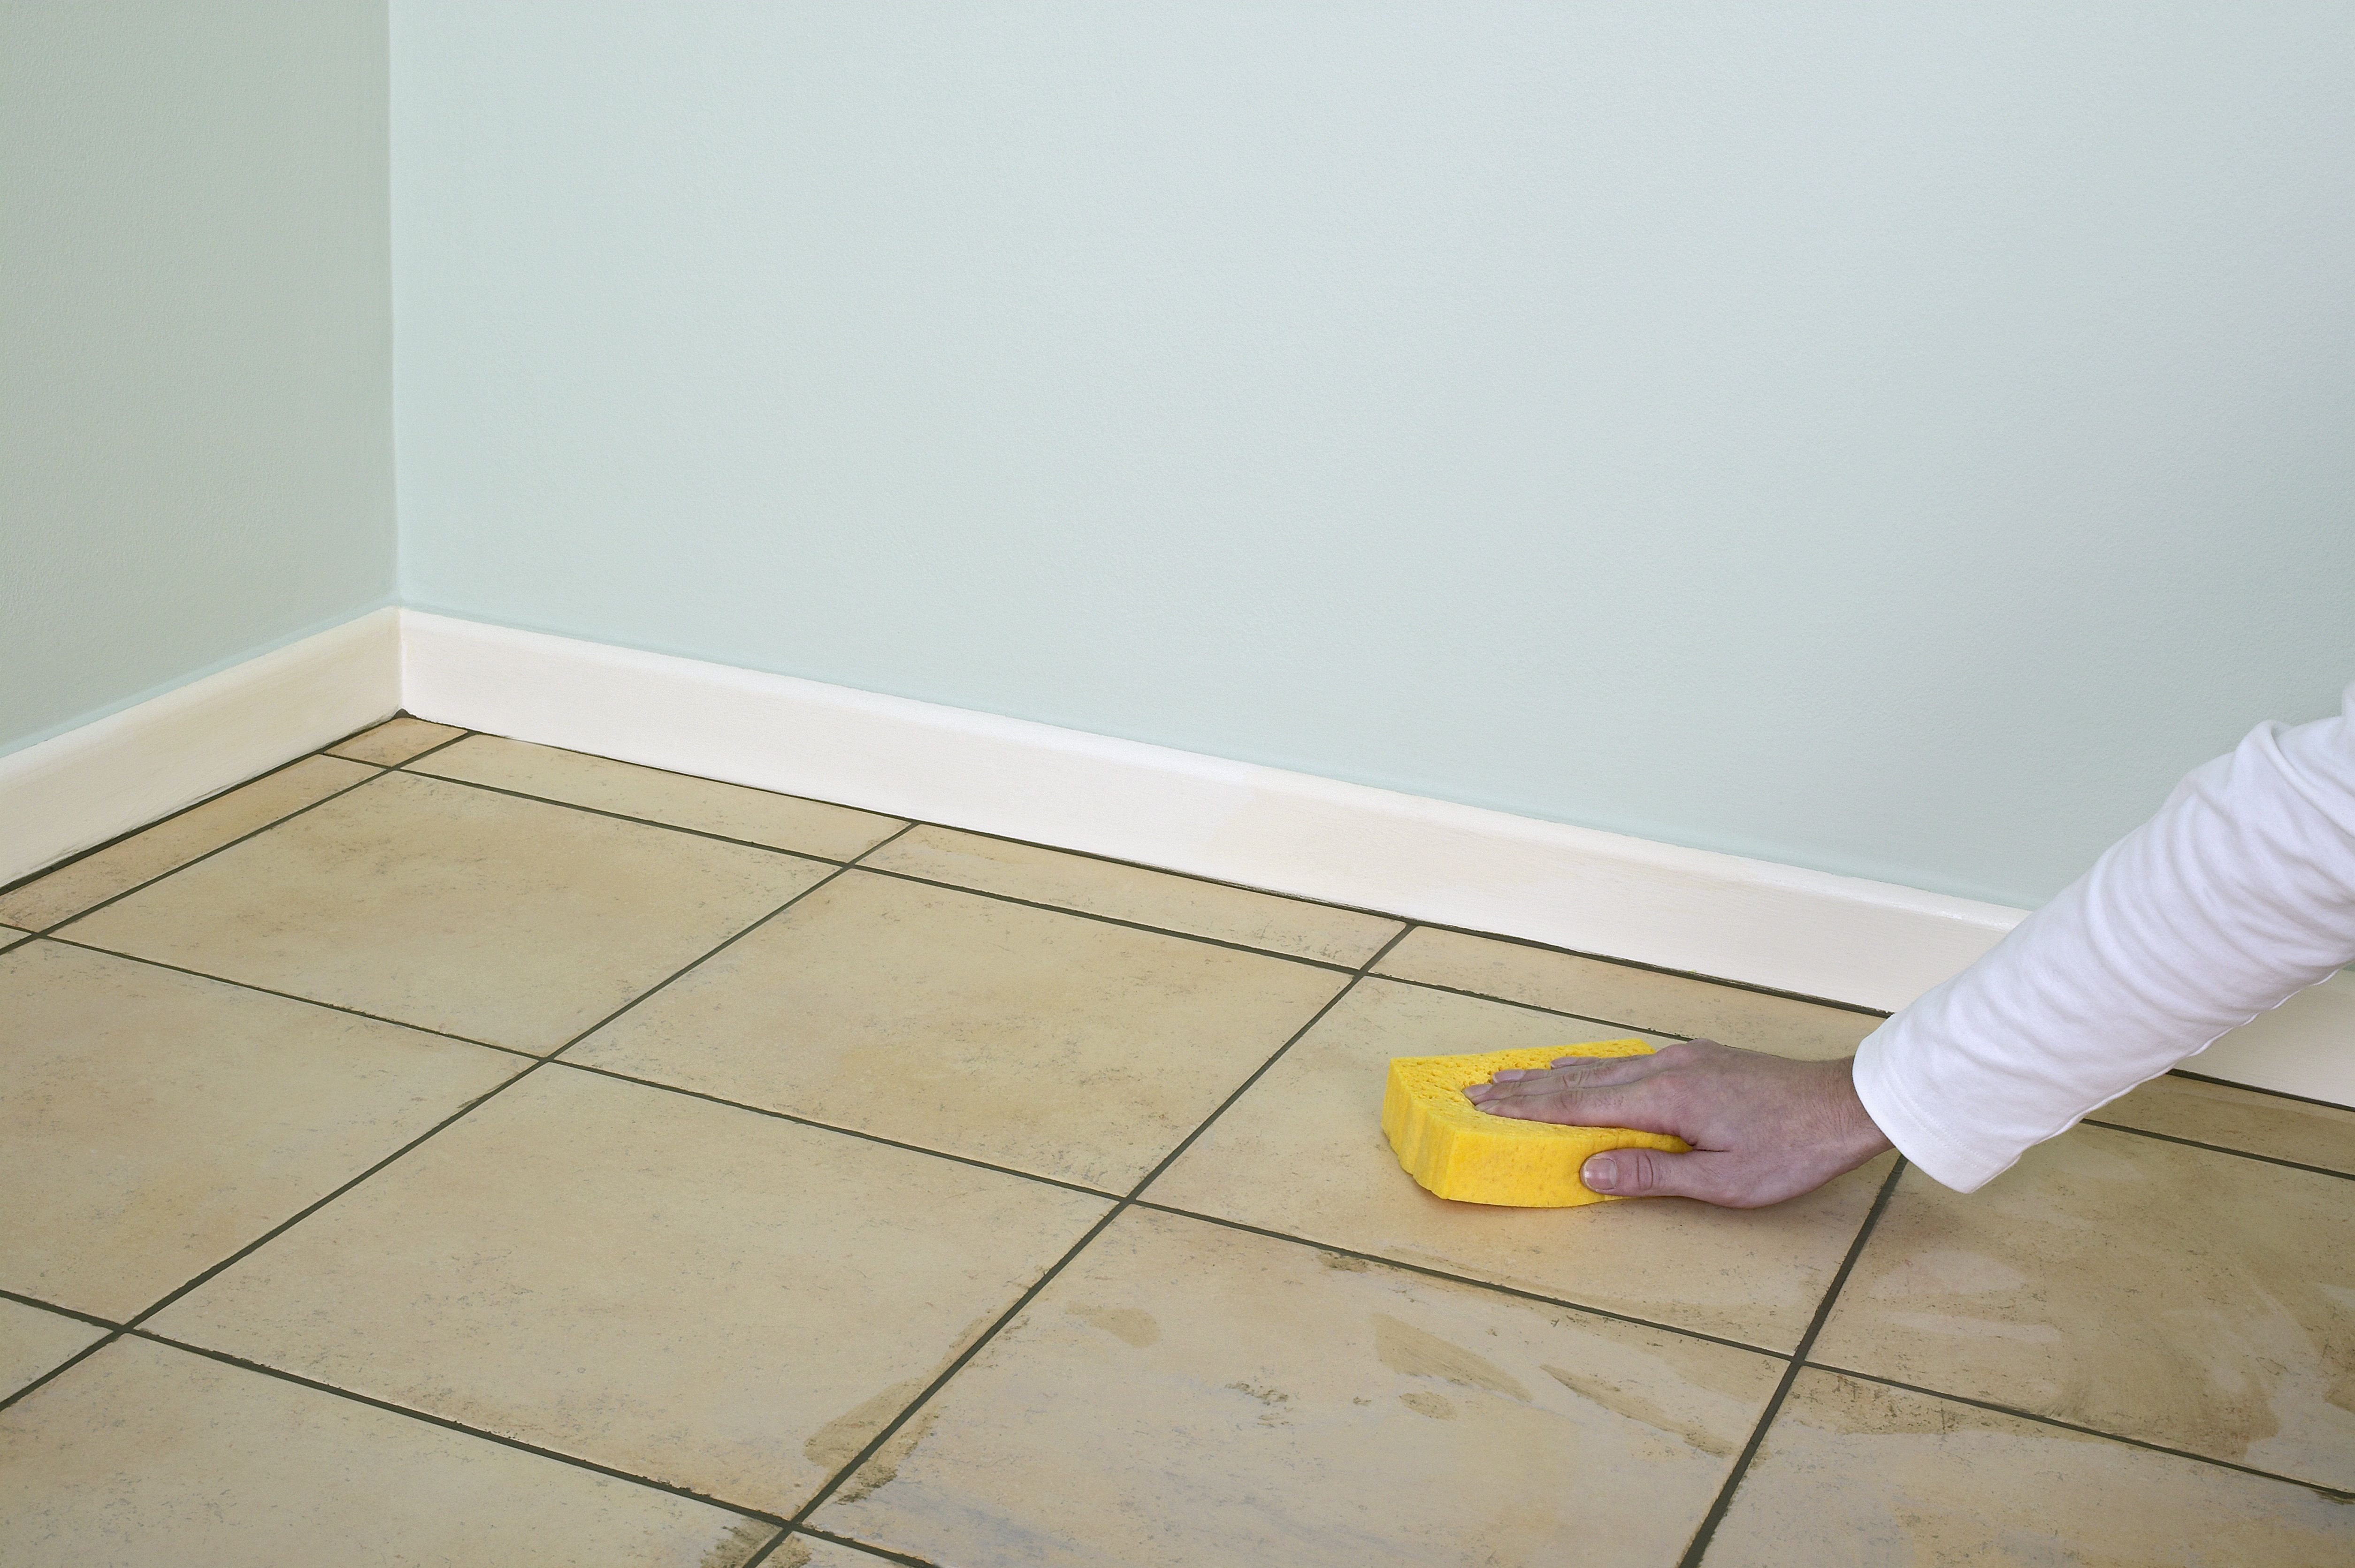 How To Remove Grout On Porcelain Tile Hunker How To Remove Grout Porcelain Tile Tile Floor